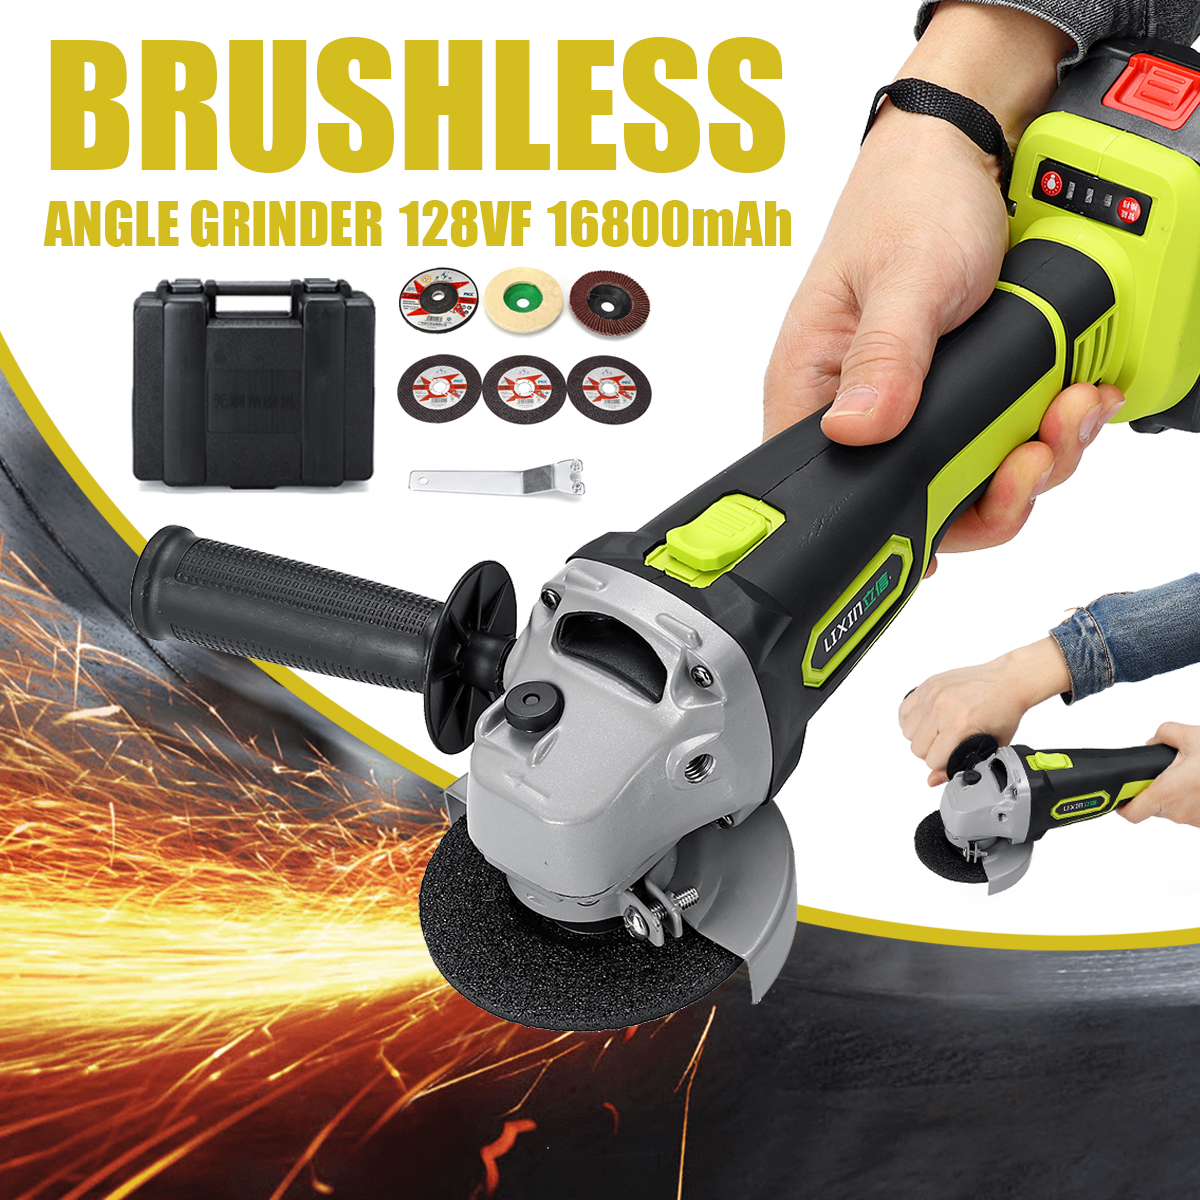 128VF 16800mAh Cordless Electric Angle Grinder Brushless Power Cutting Angle Grinding Tool with Li-ion Battery& Charger